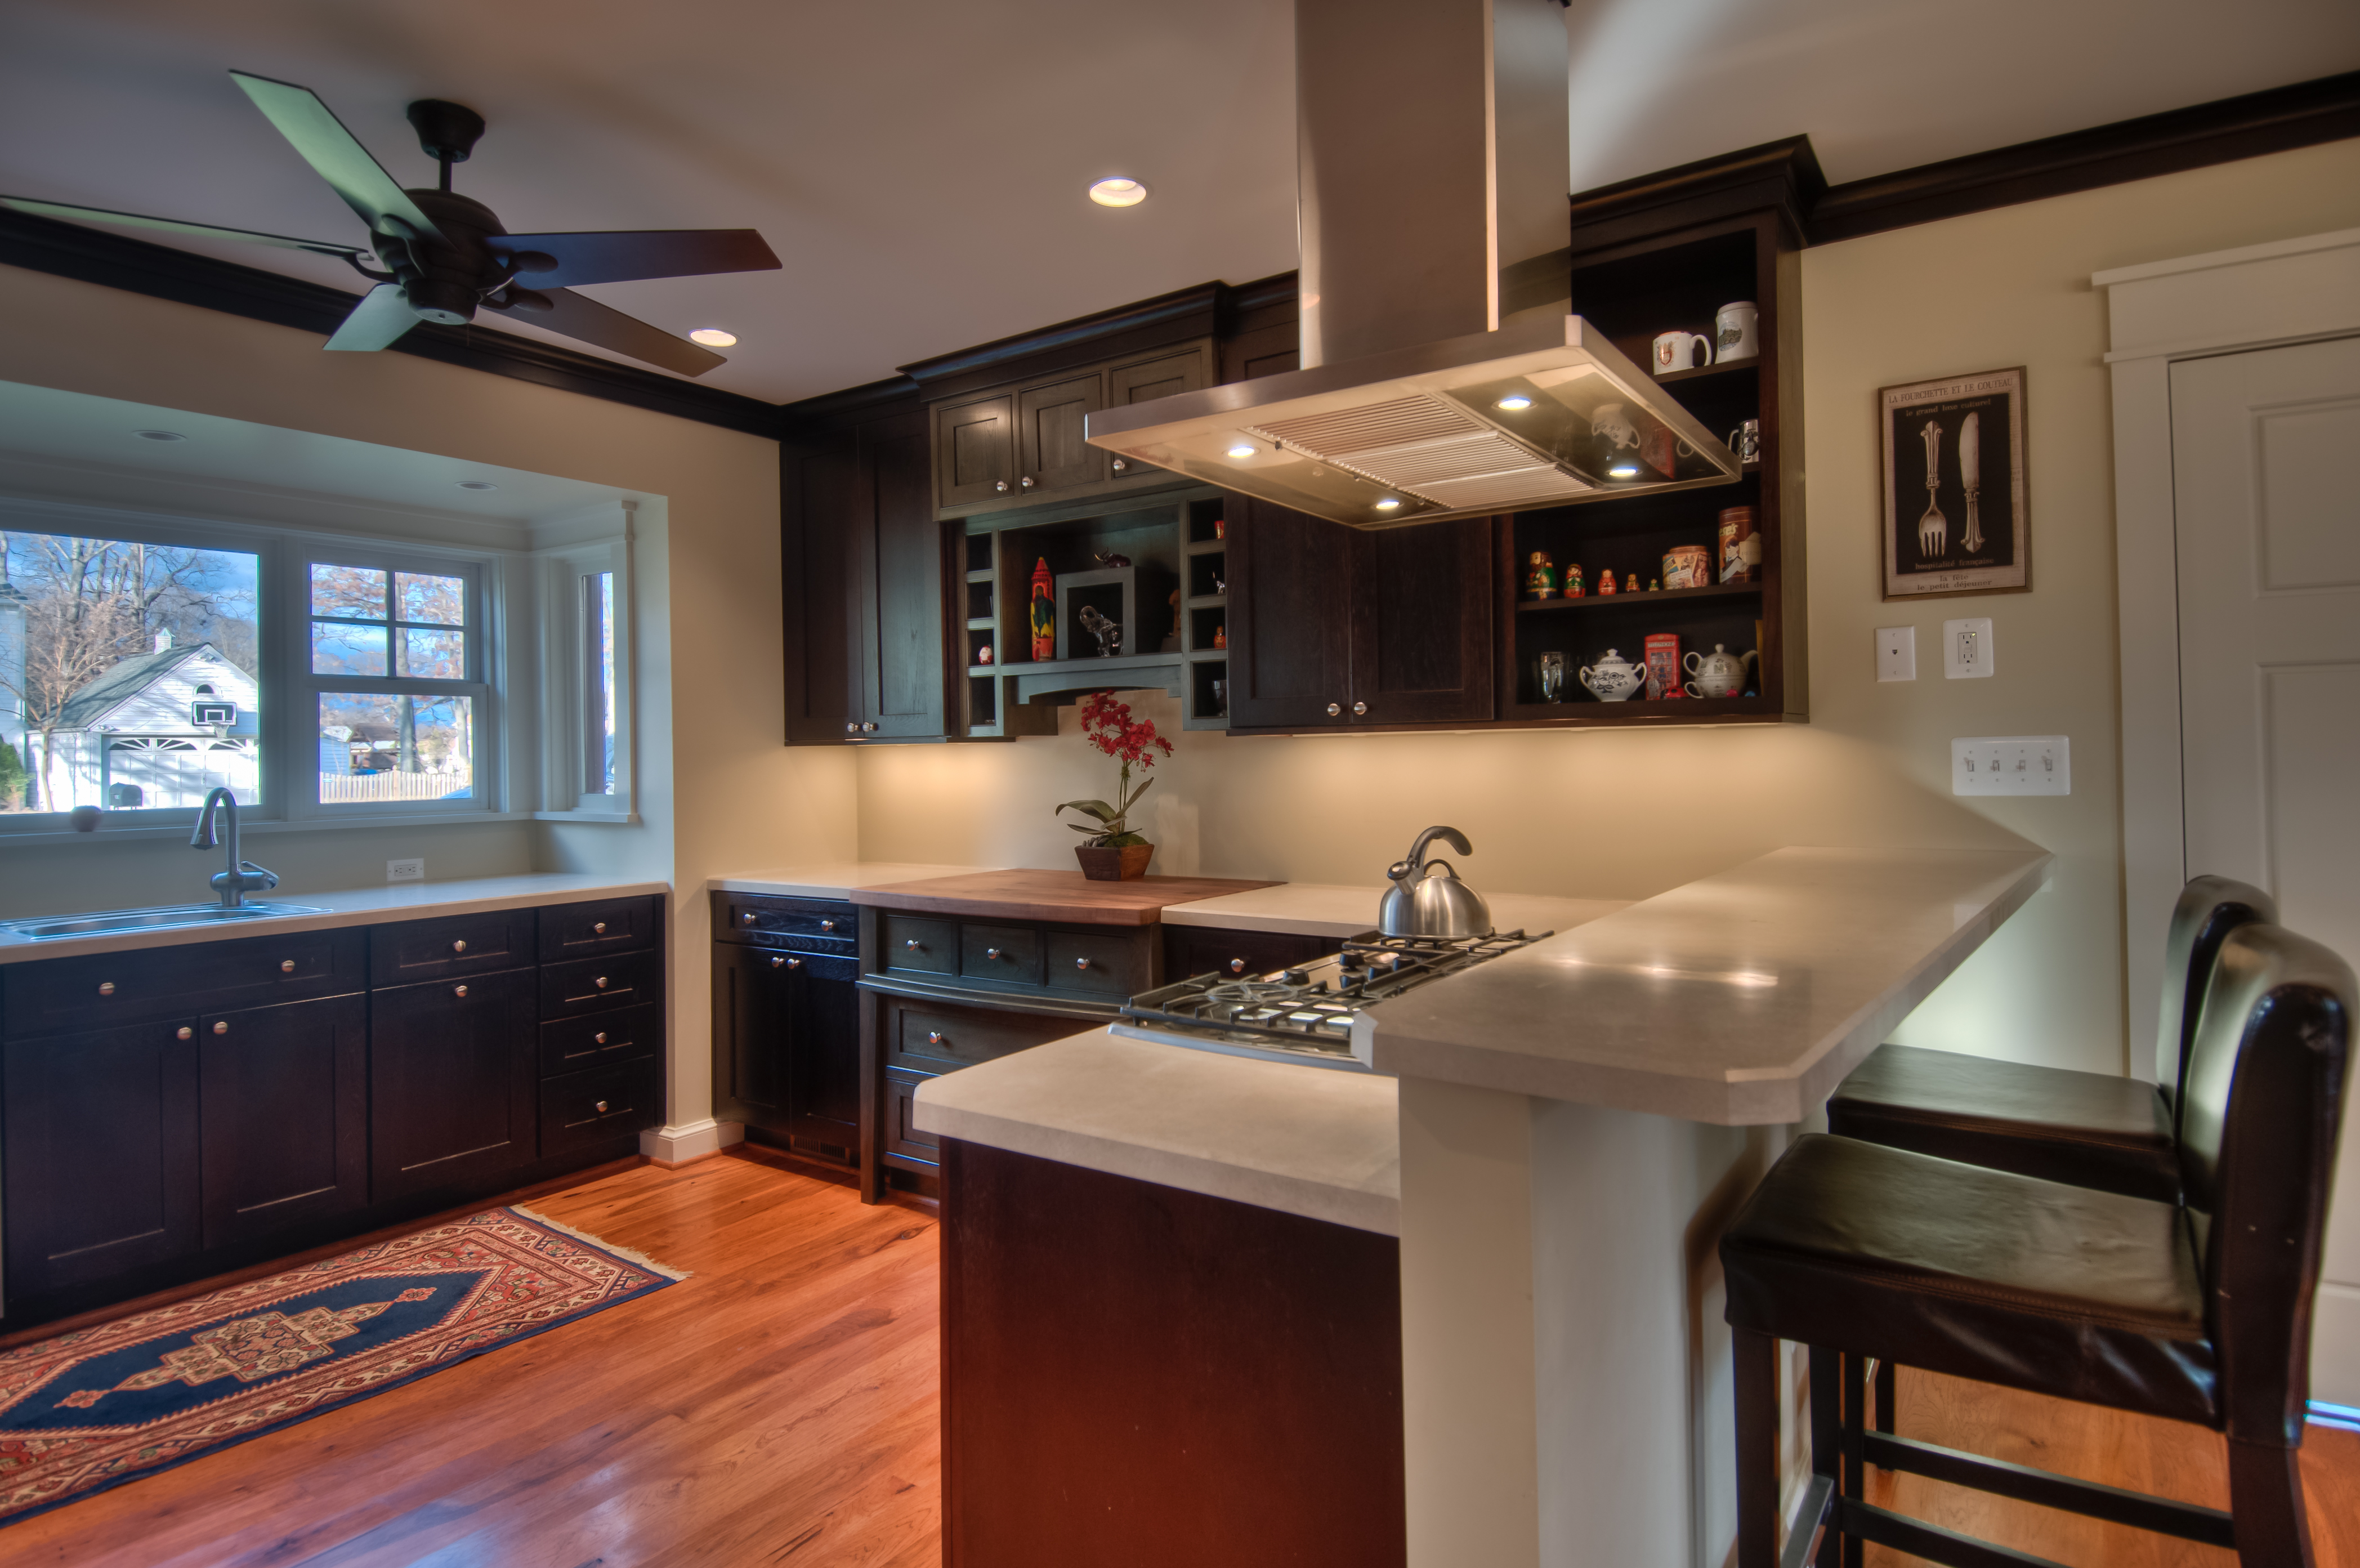 Another view of the kitchen, showcasing the raised bar with seating for two, the warm hardwood floors and small rug in front of the sink. A ceiling fan helps keep the kitchen cool.